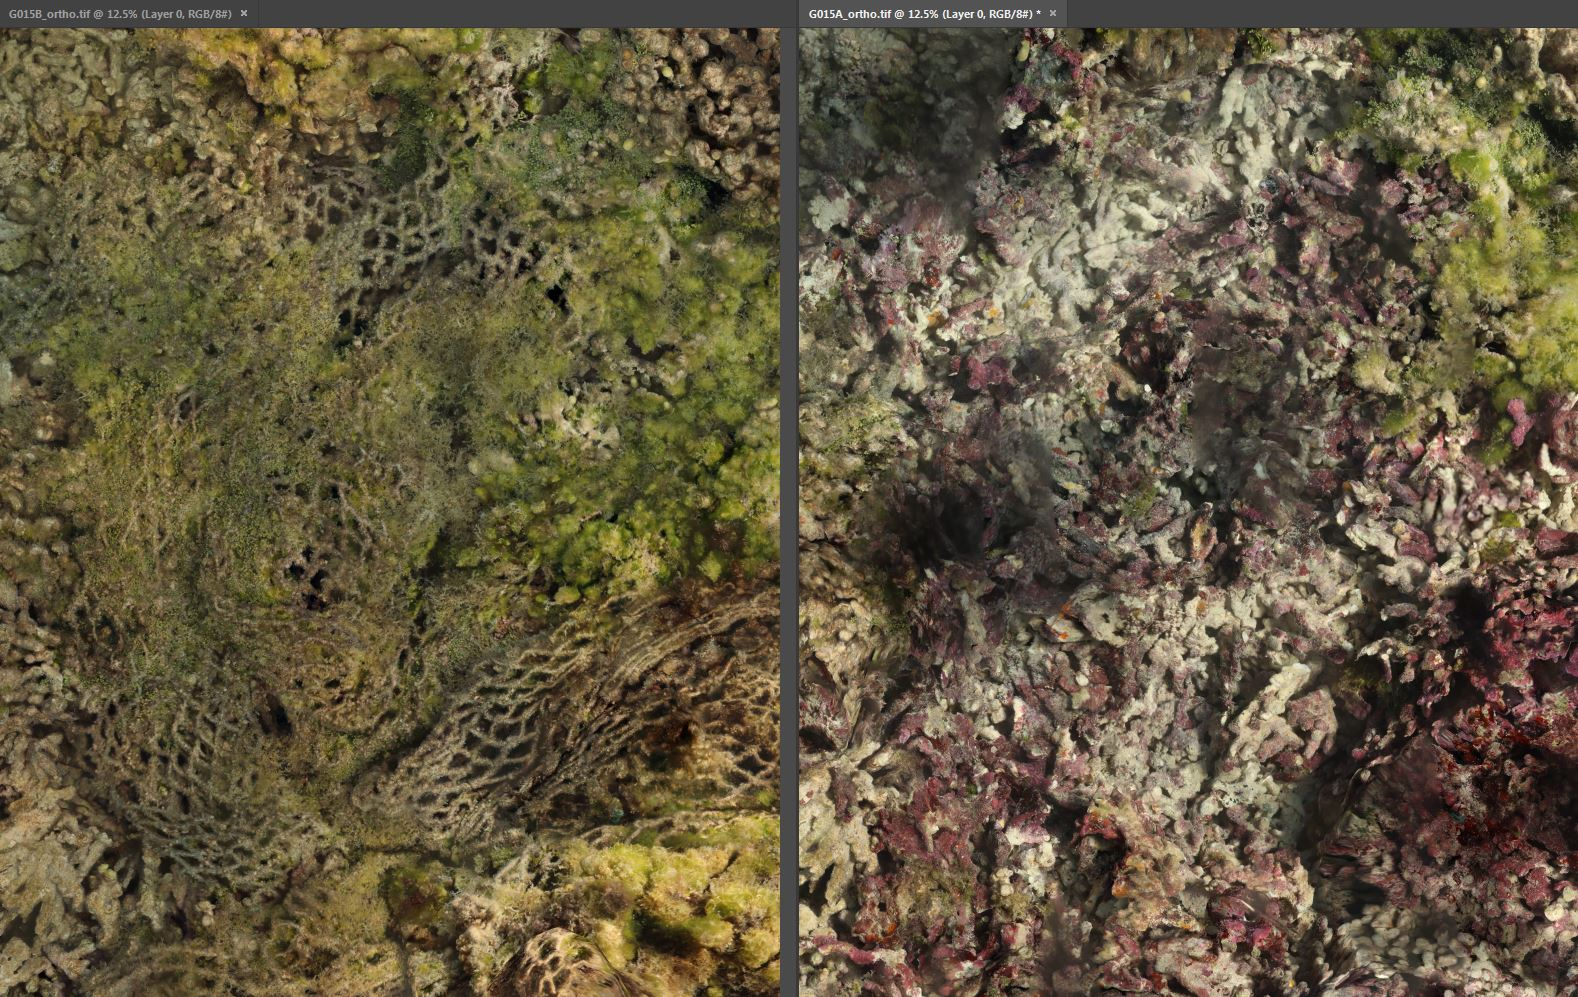 Structure from motion (photomosaic) images of a coral reef with the net in place (left) and after net removal (right).